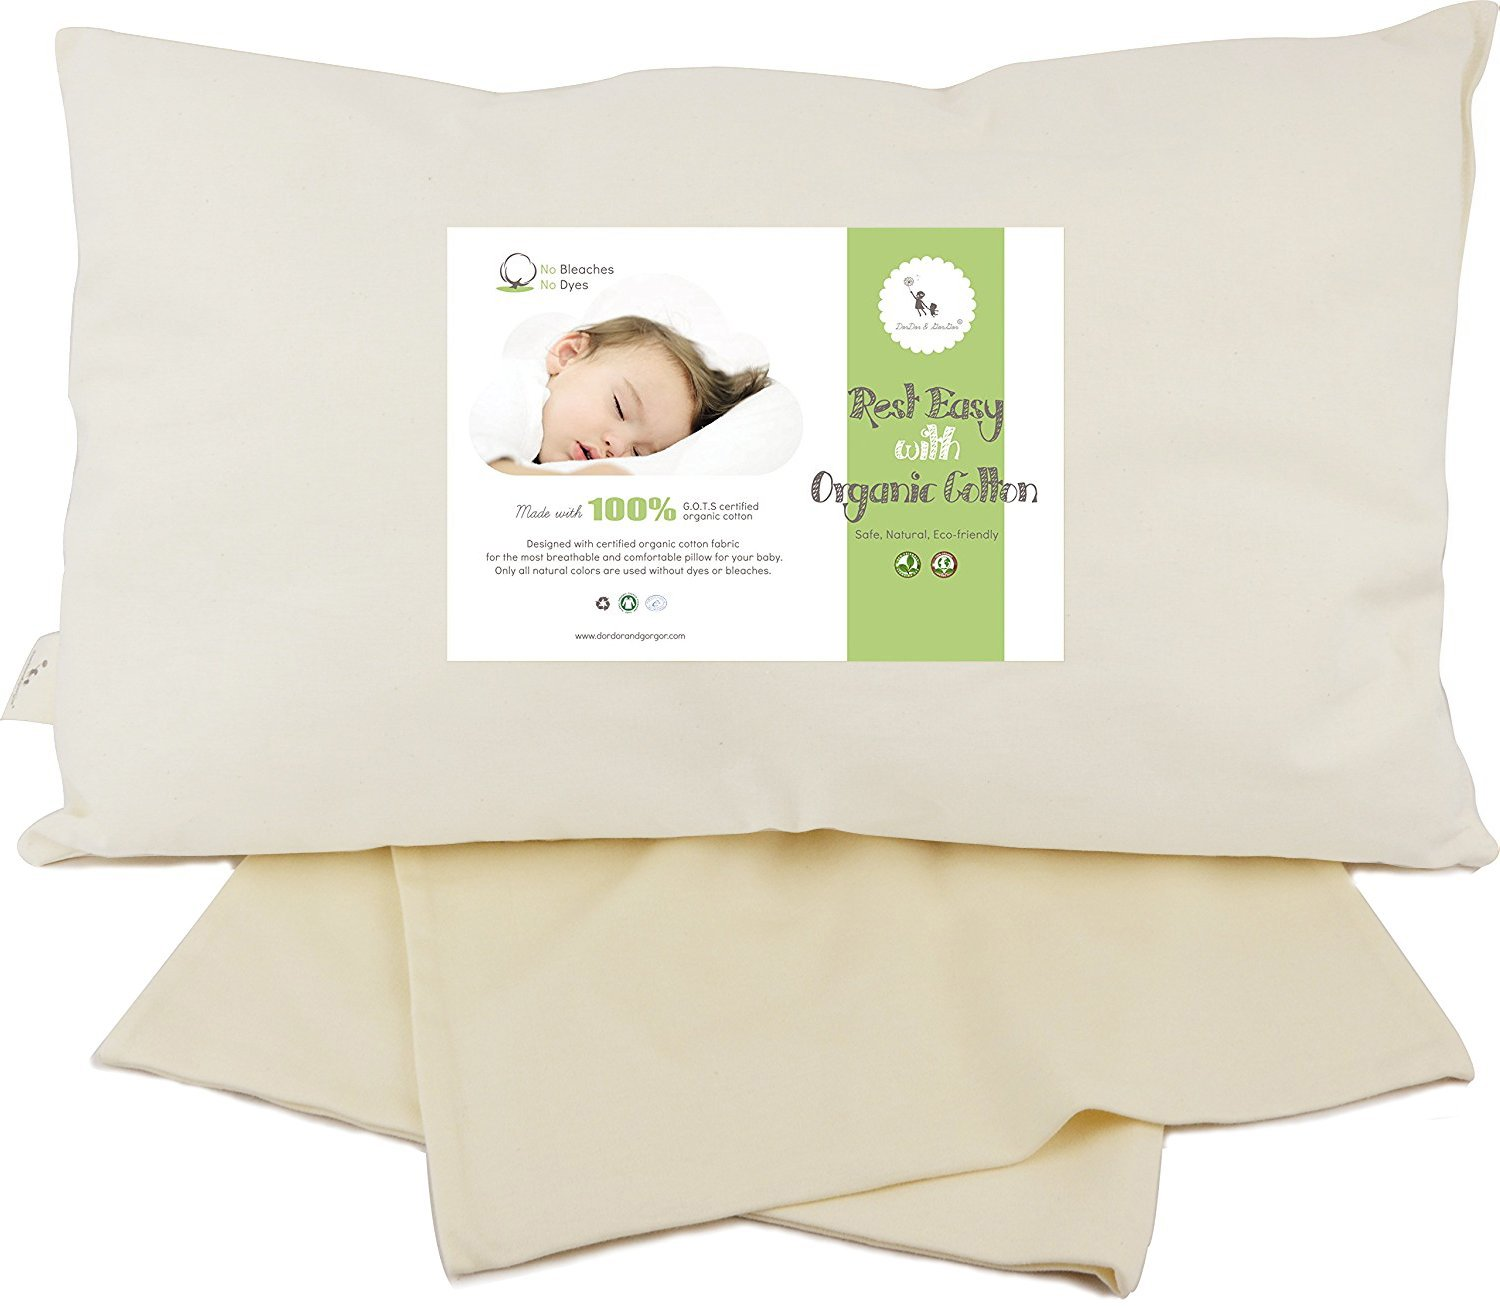 DorDor and GorGor ORGANIC Baby Toddler Pillow 13 X 18 for Kids. Pillow with Beige Pillowcase. ''PLEASE WASH IT AFTER OPEN THE PACKAGE. IT WILL BE FLUFFY AFTER WASH.'' (With Pillowcase)